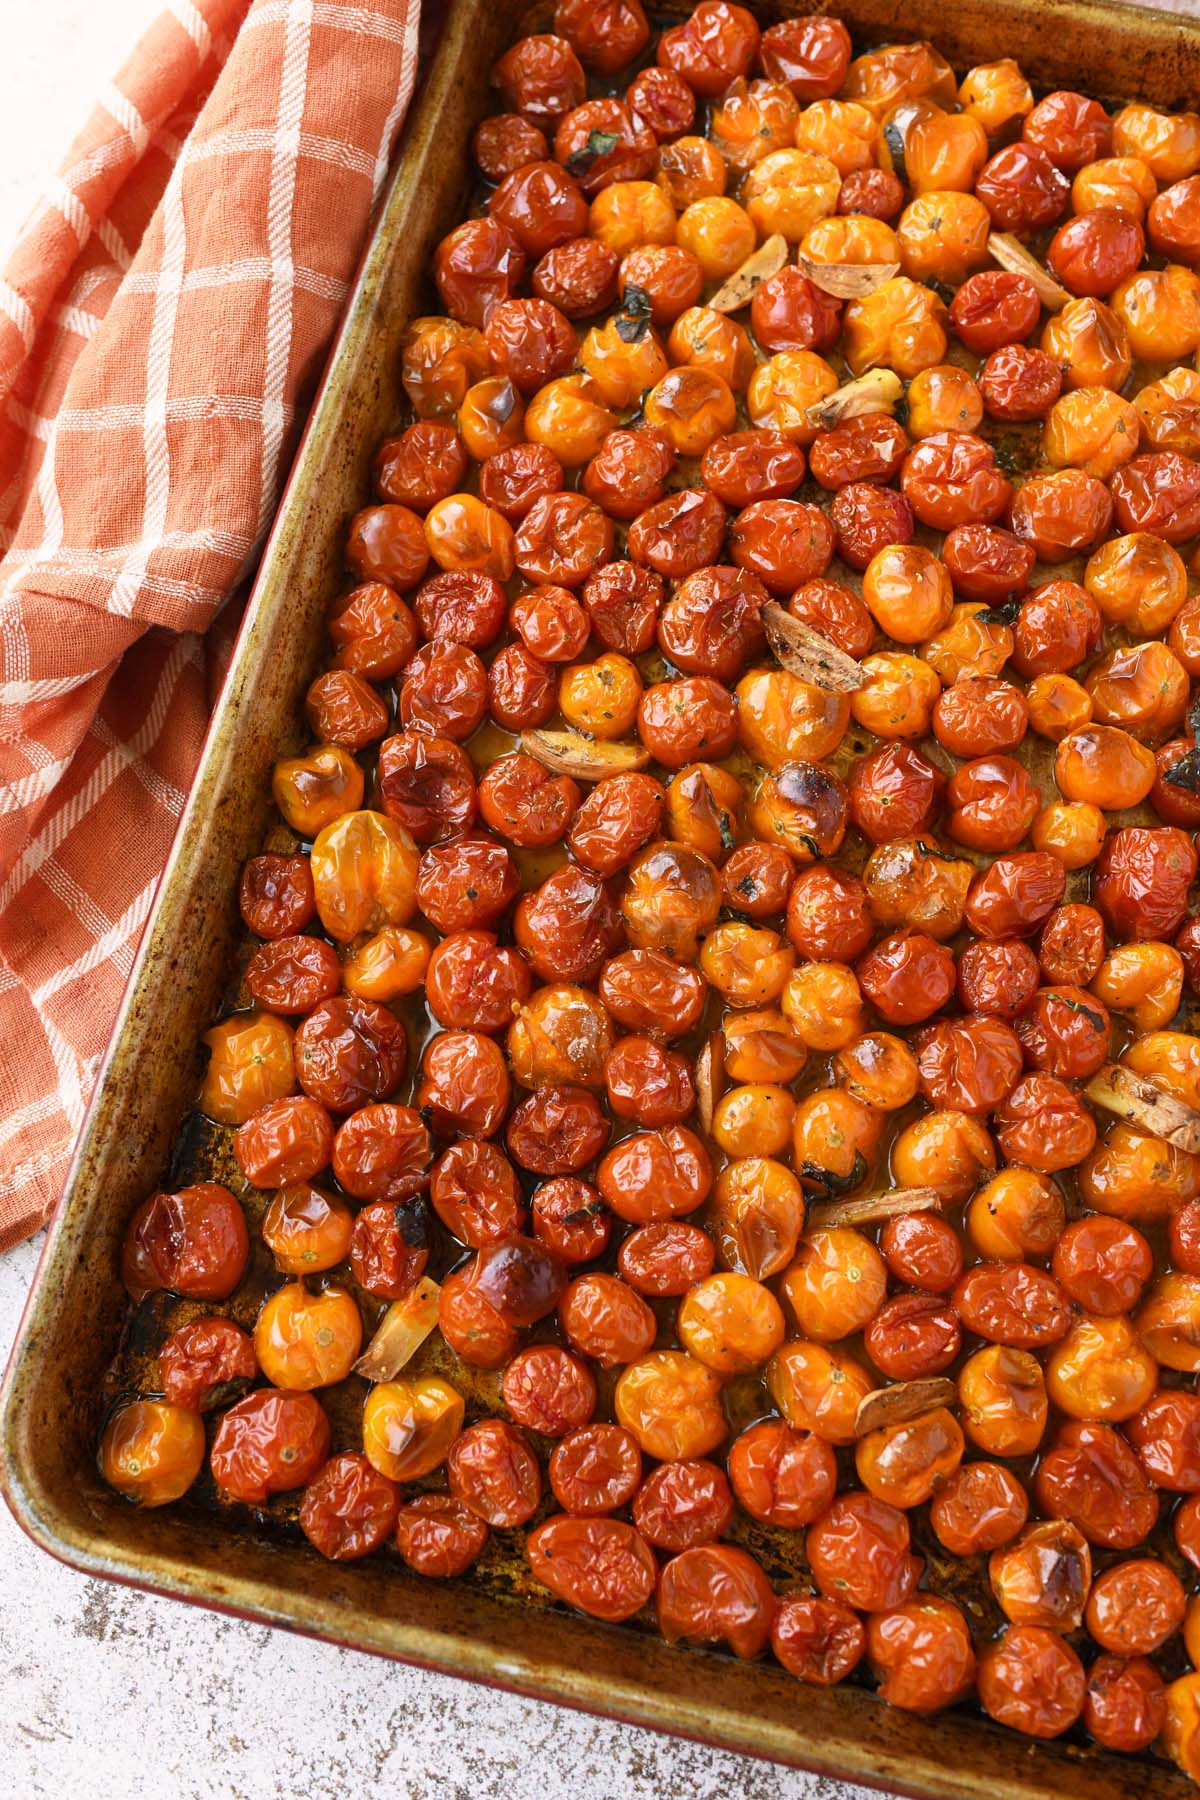 Oven roasted cherry tomatoes with garlic on a worn baking sheet.